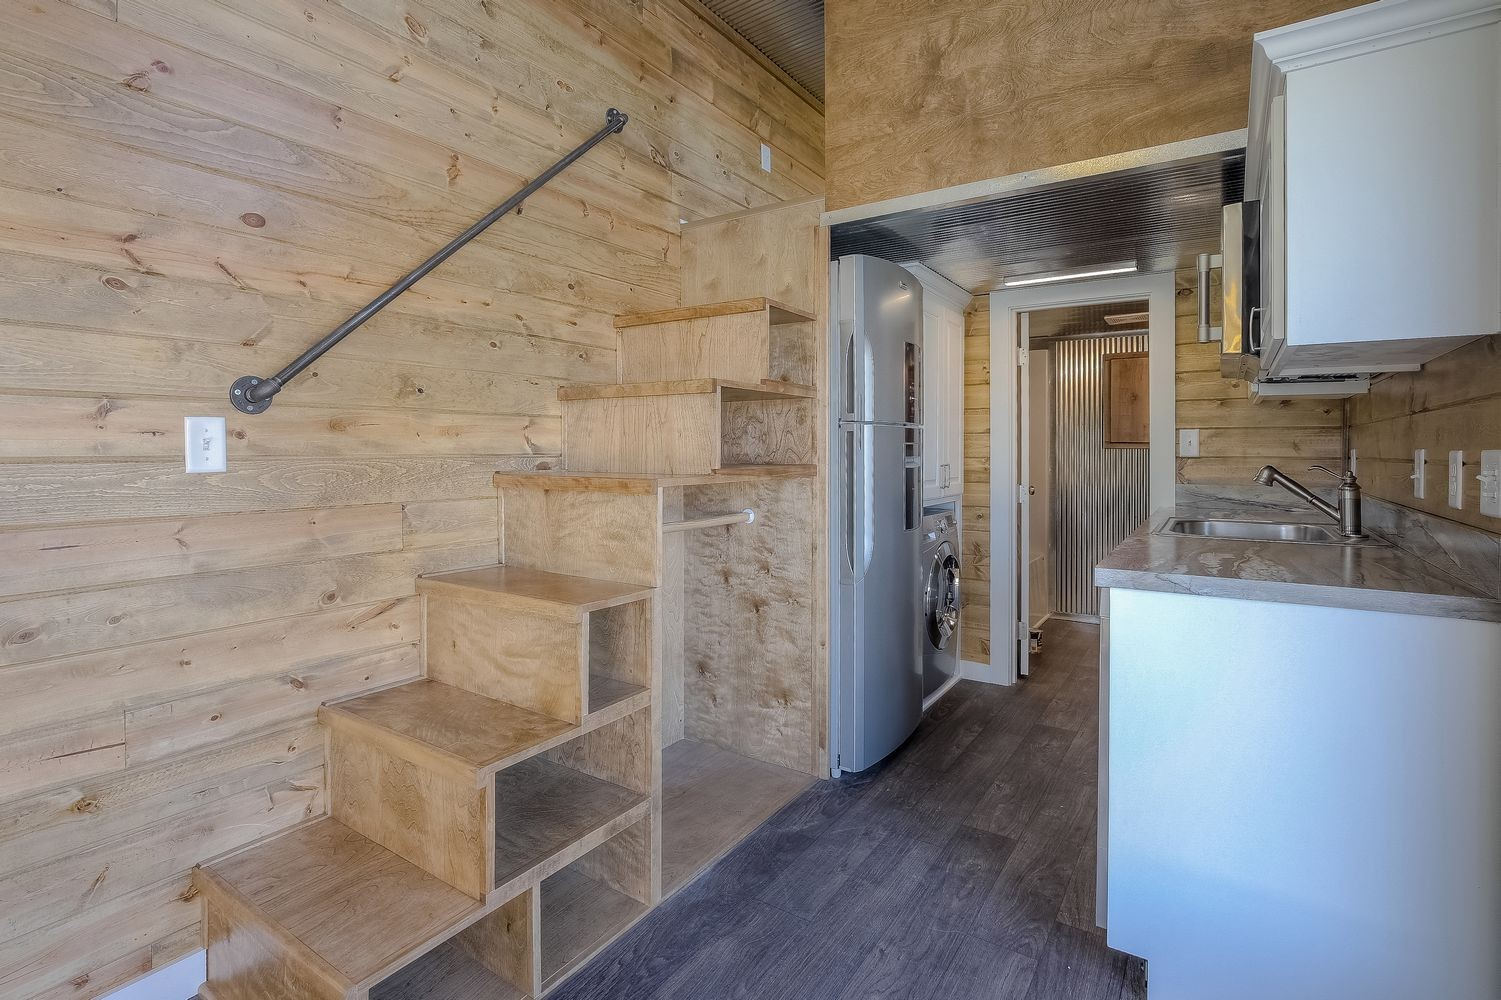 Slick Tiny House Converted From 40 Foot Shipping Container